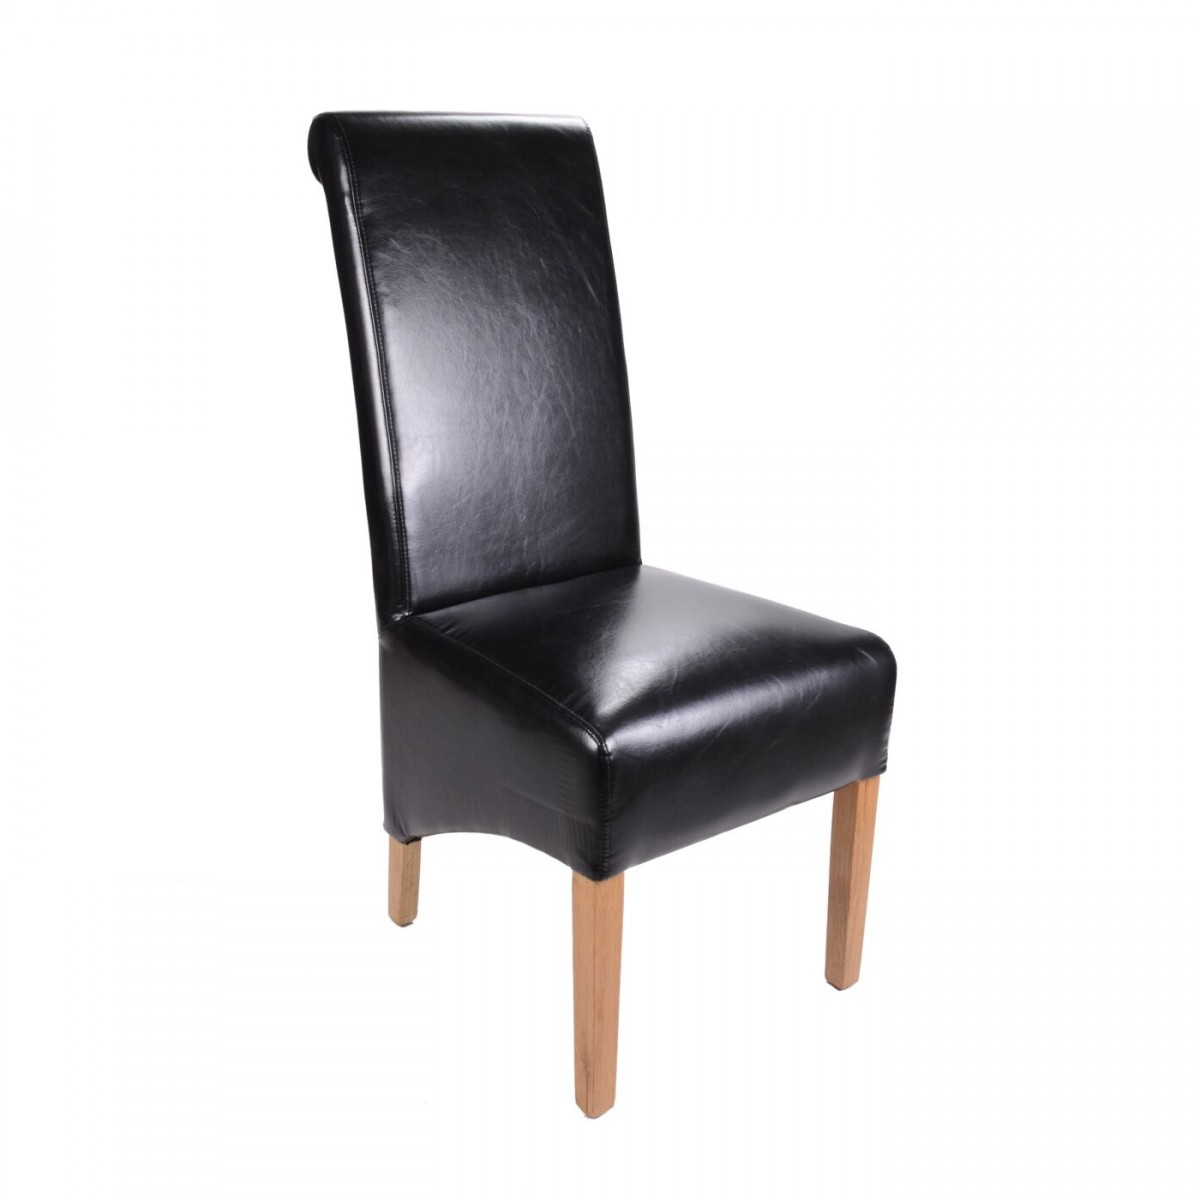 https://www.firstfurniture.co.uk/pub/media/catalog/product/s/h/shankar_krista_bonded_leather_chair_kris_dcl_black_7-1200x1200.jpg